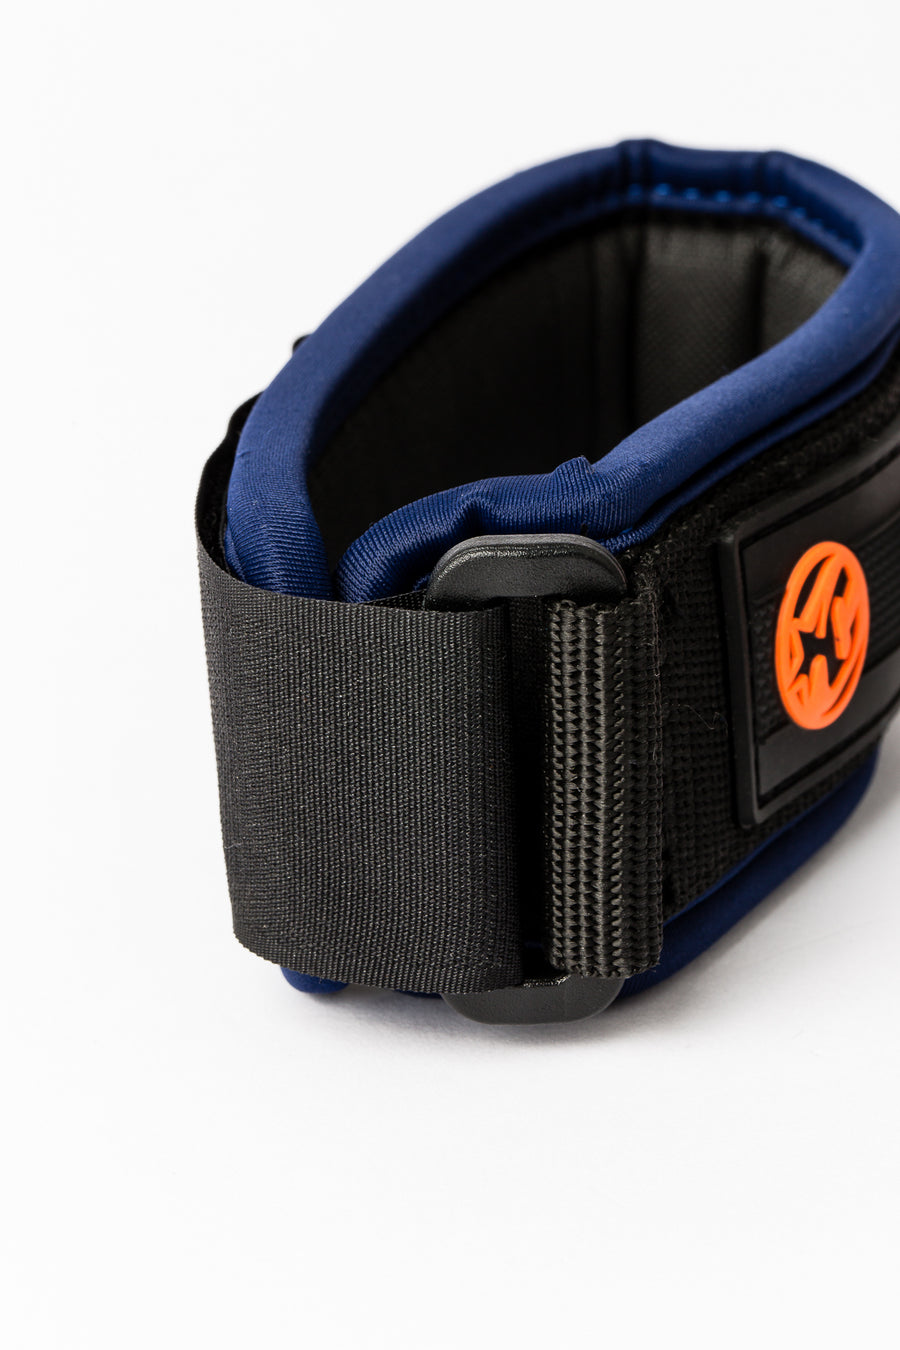 Ryan Hardy Bicep Leash - Small